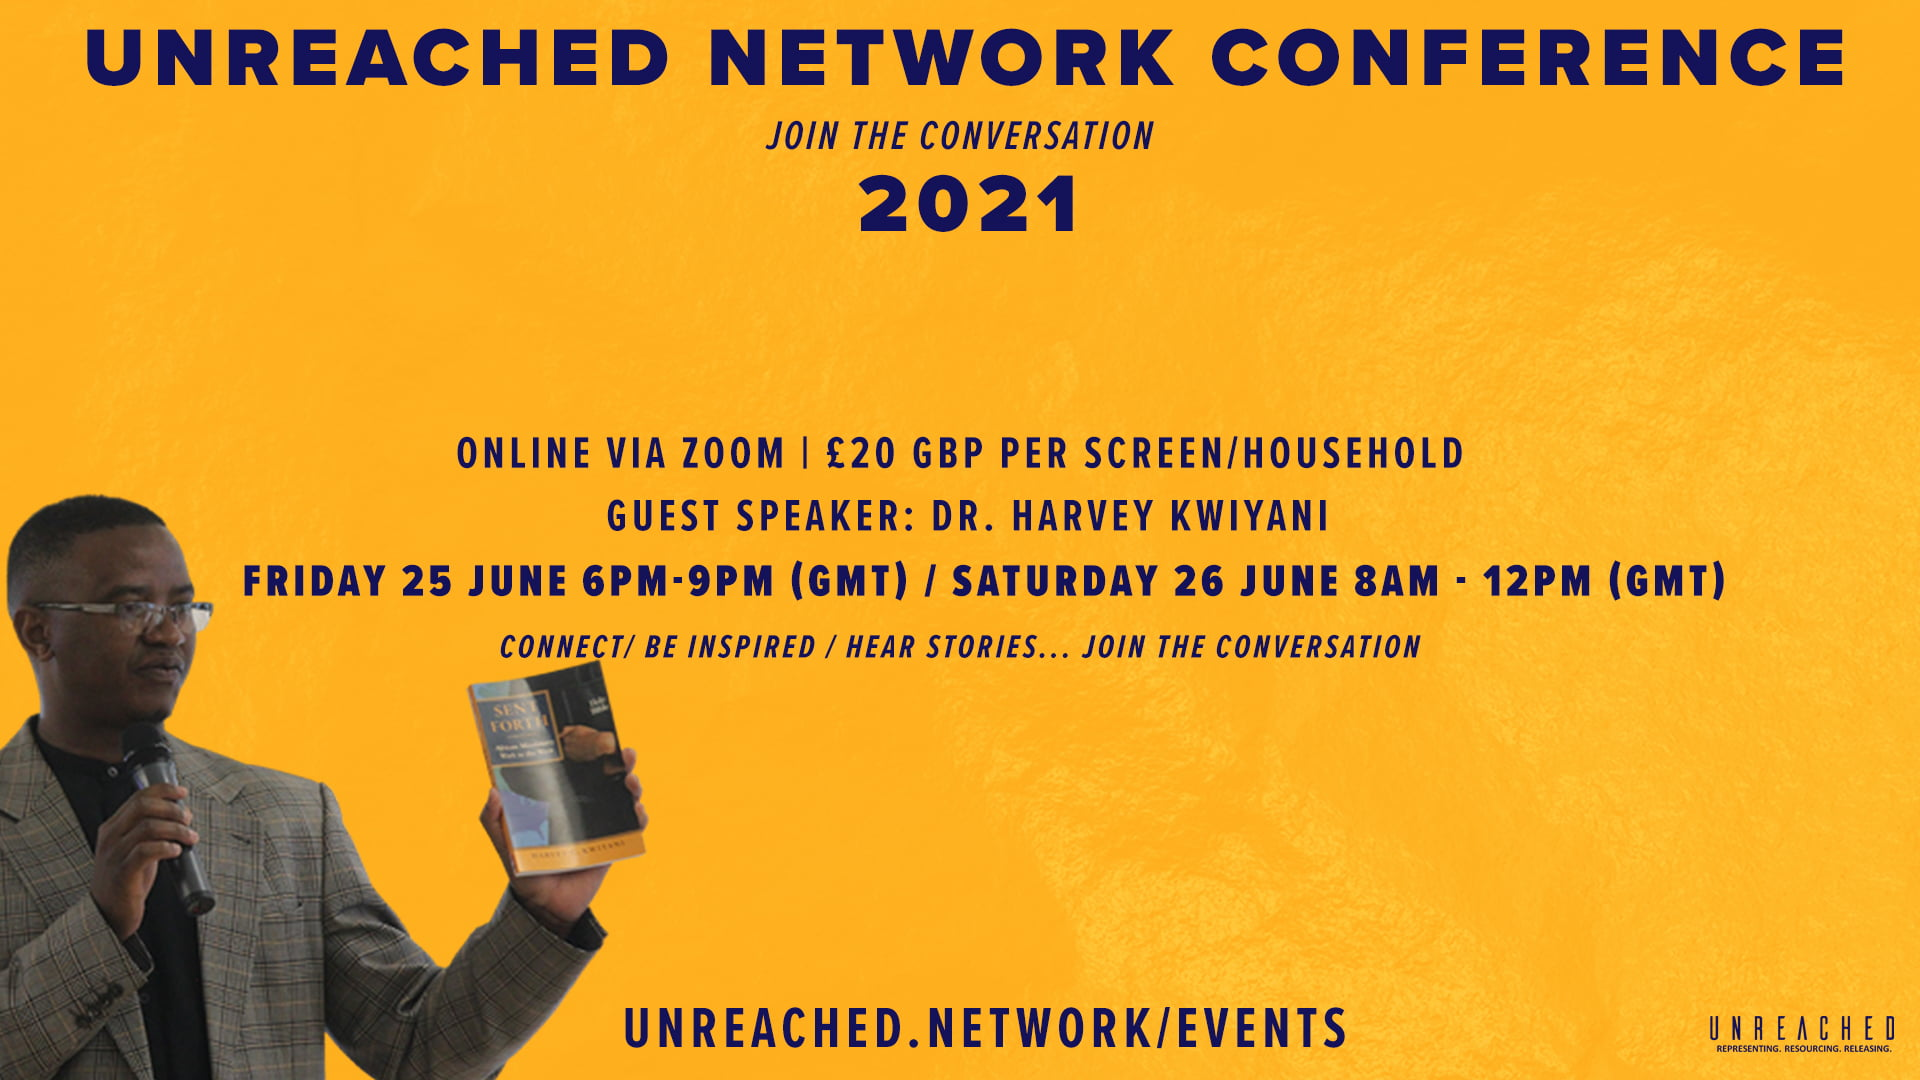 Unreached Network Conference 2021: Join the Conversation/ Find your Place